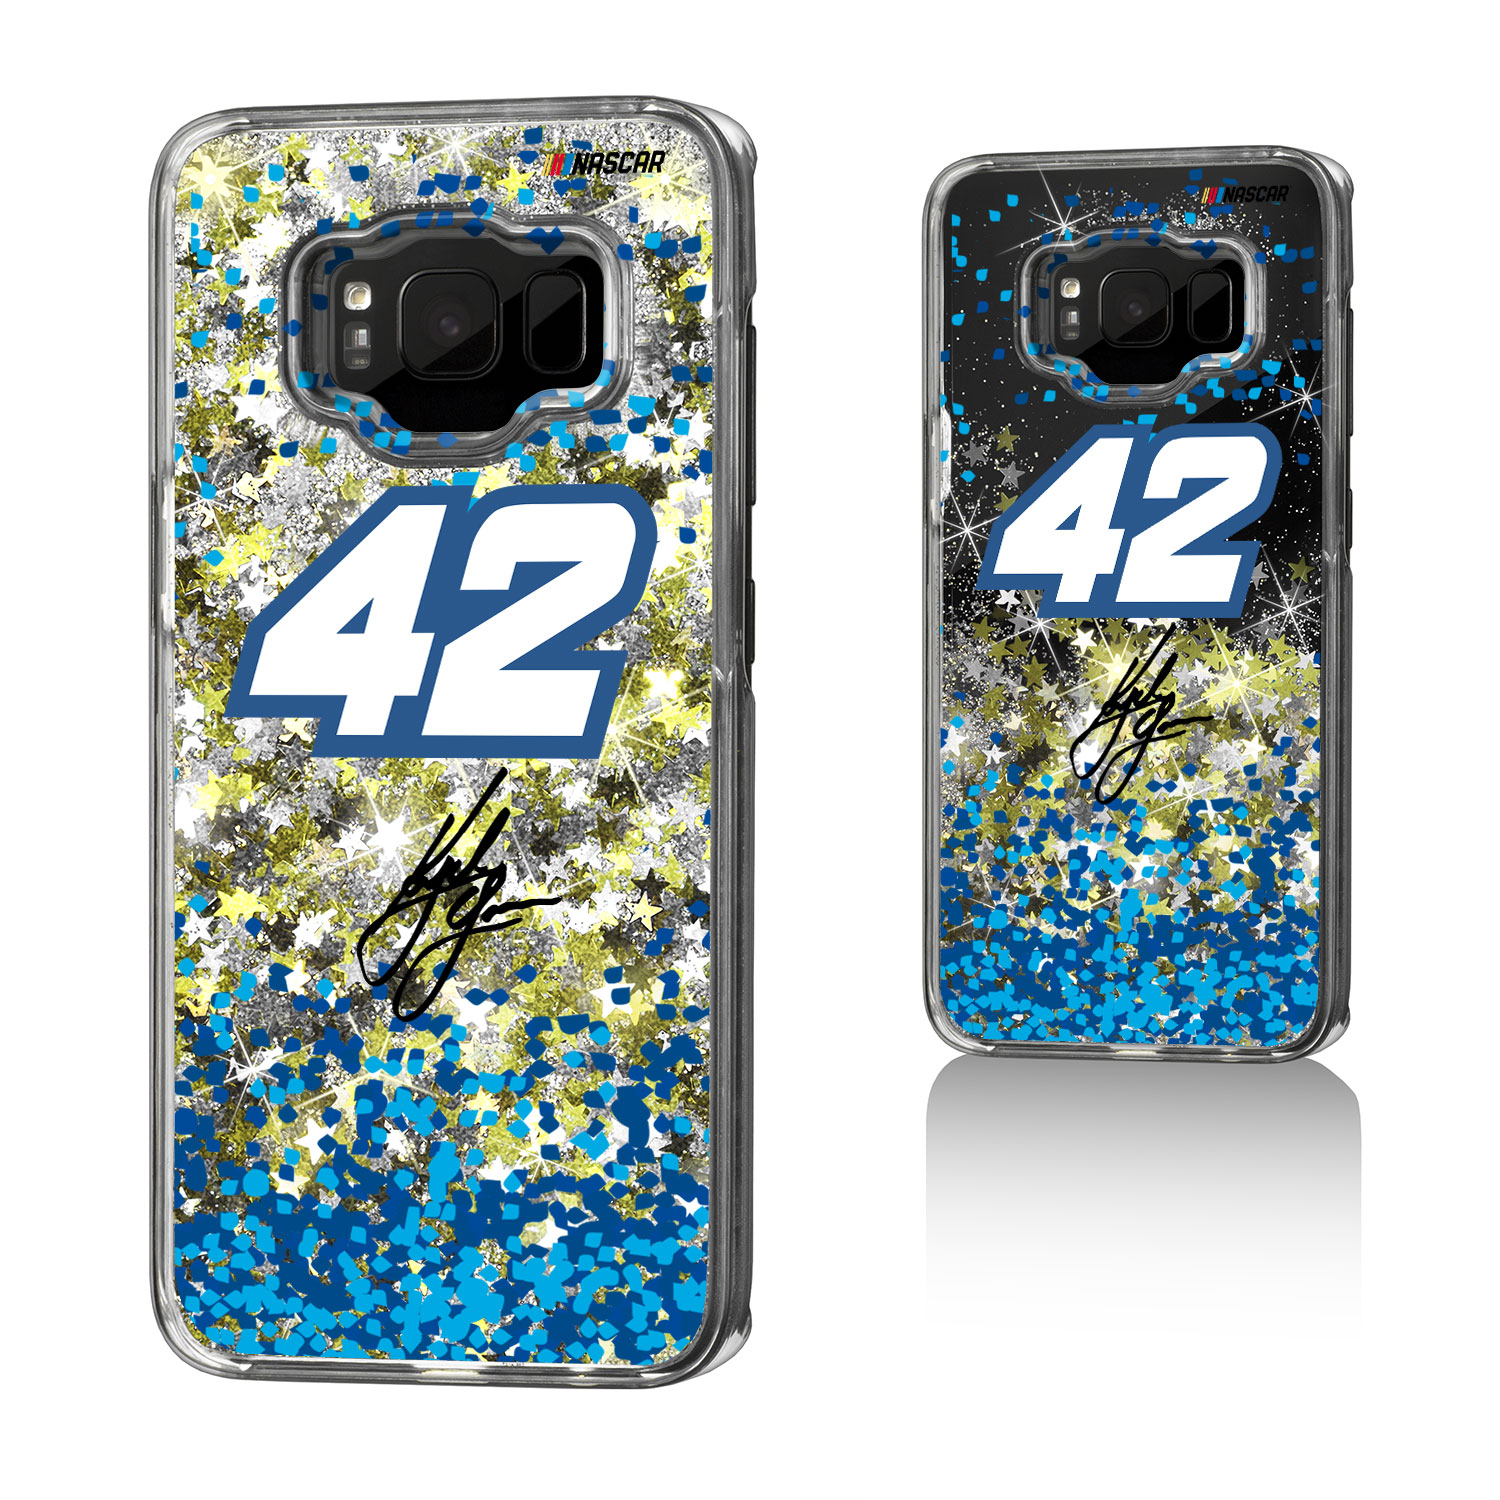 Kyle Larson Confetti Glitter Case for Galaxy S8